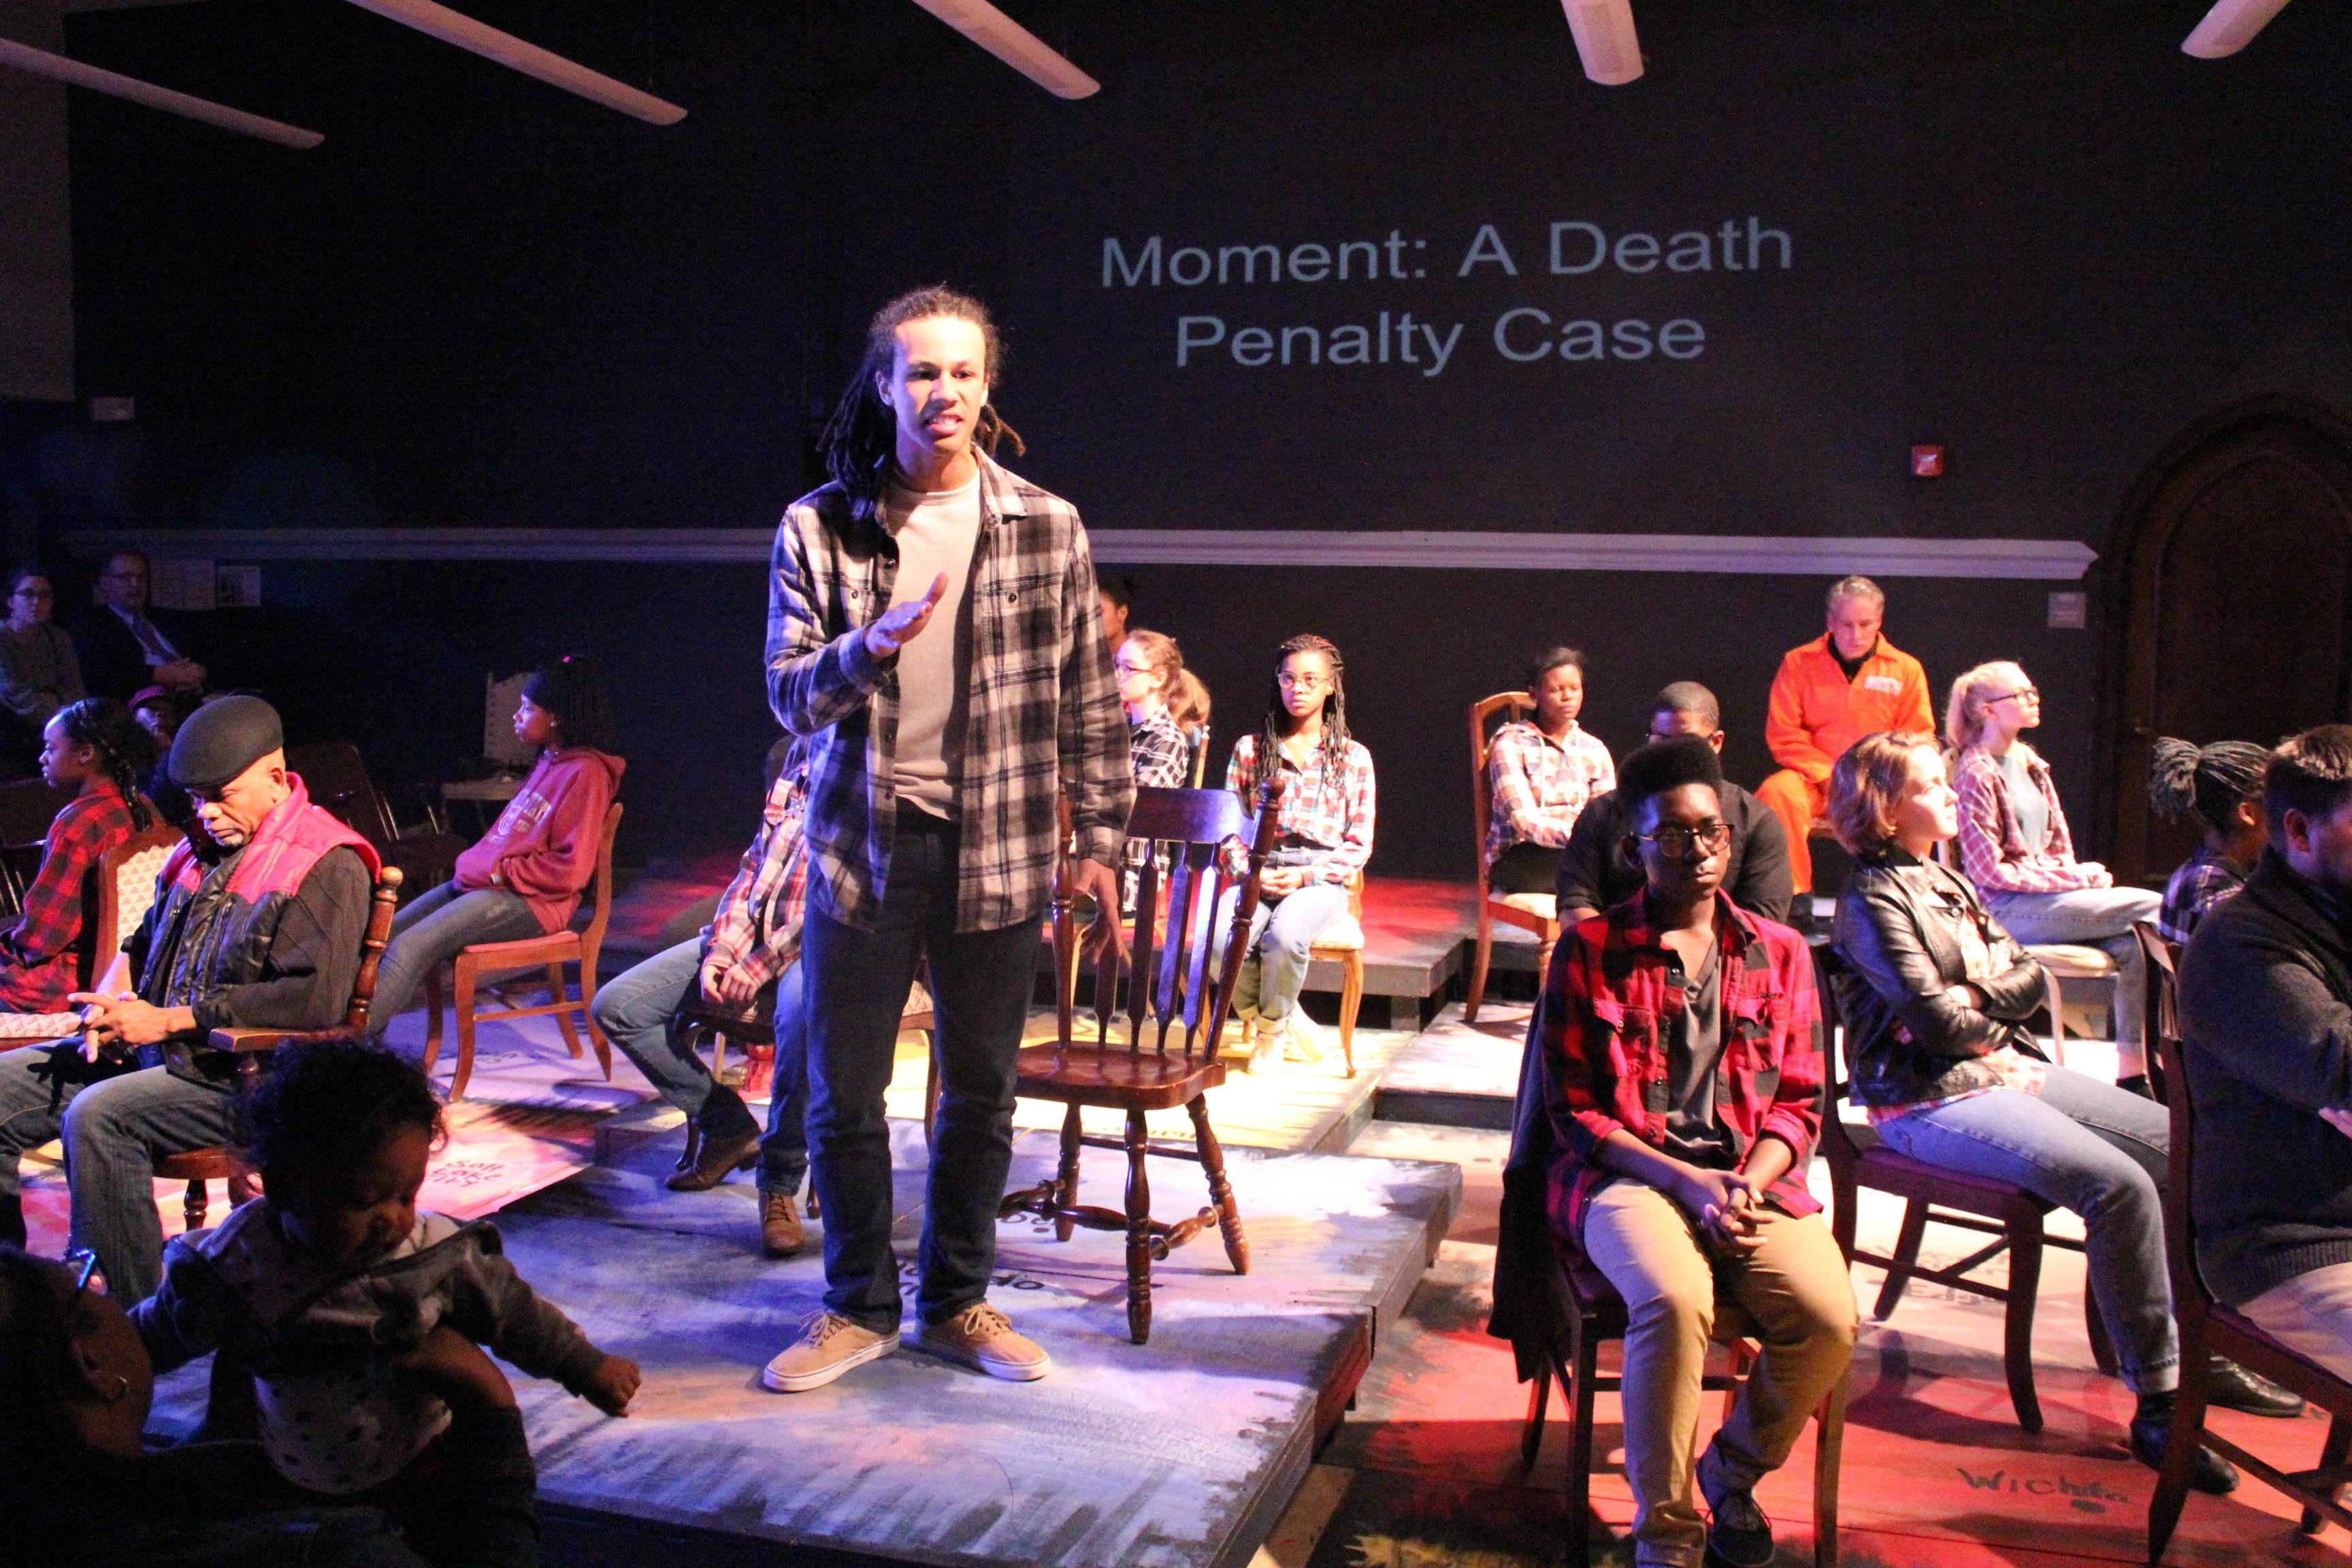 Junior Khol Parker plays the role of Rob Debree, who interviews  Aaron McKinney, one of Matthew Shepard's murderers.